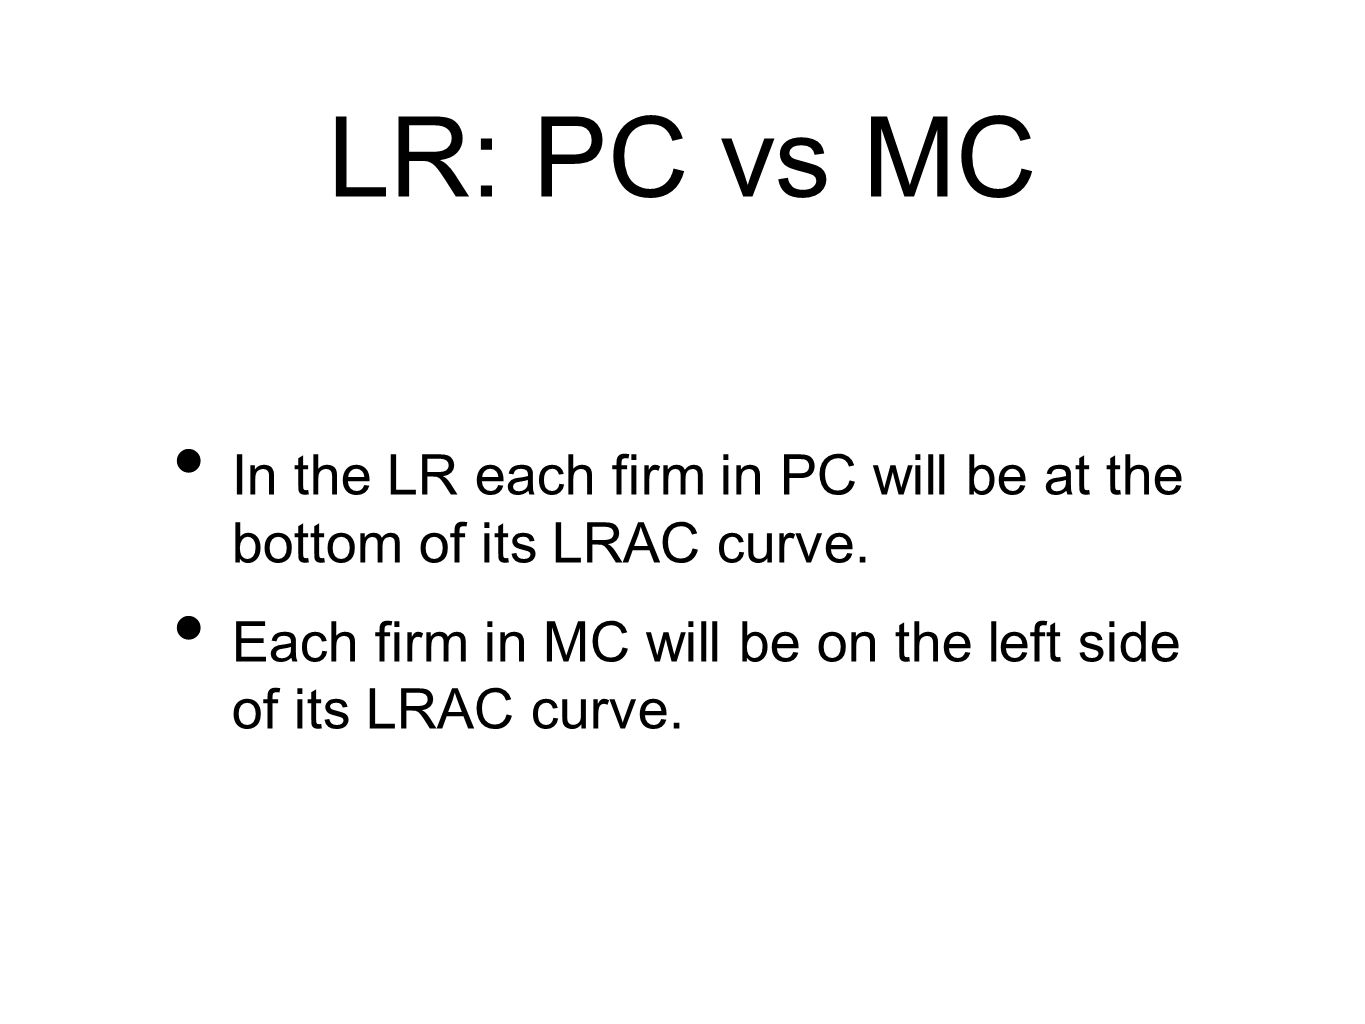 LR: PC vs MC In the LR each firm in PC will be at the bottom of its LRAC curve.